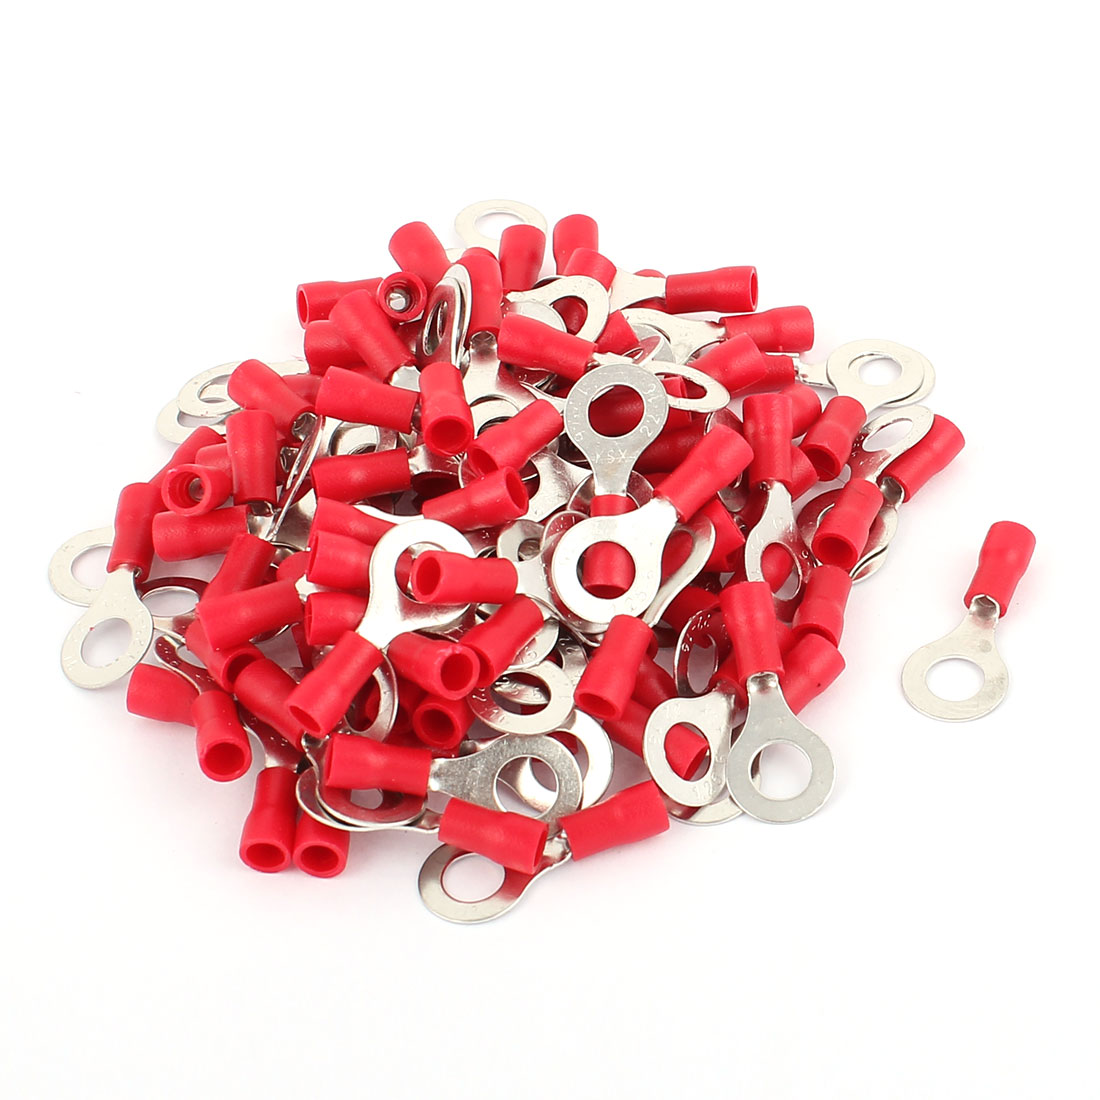 108 Pcs RV1.25-6 Red PVC Sleeve Pre Insulated Ring Crimp Terminals Connector